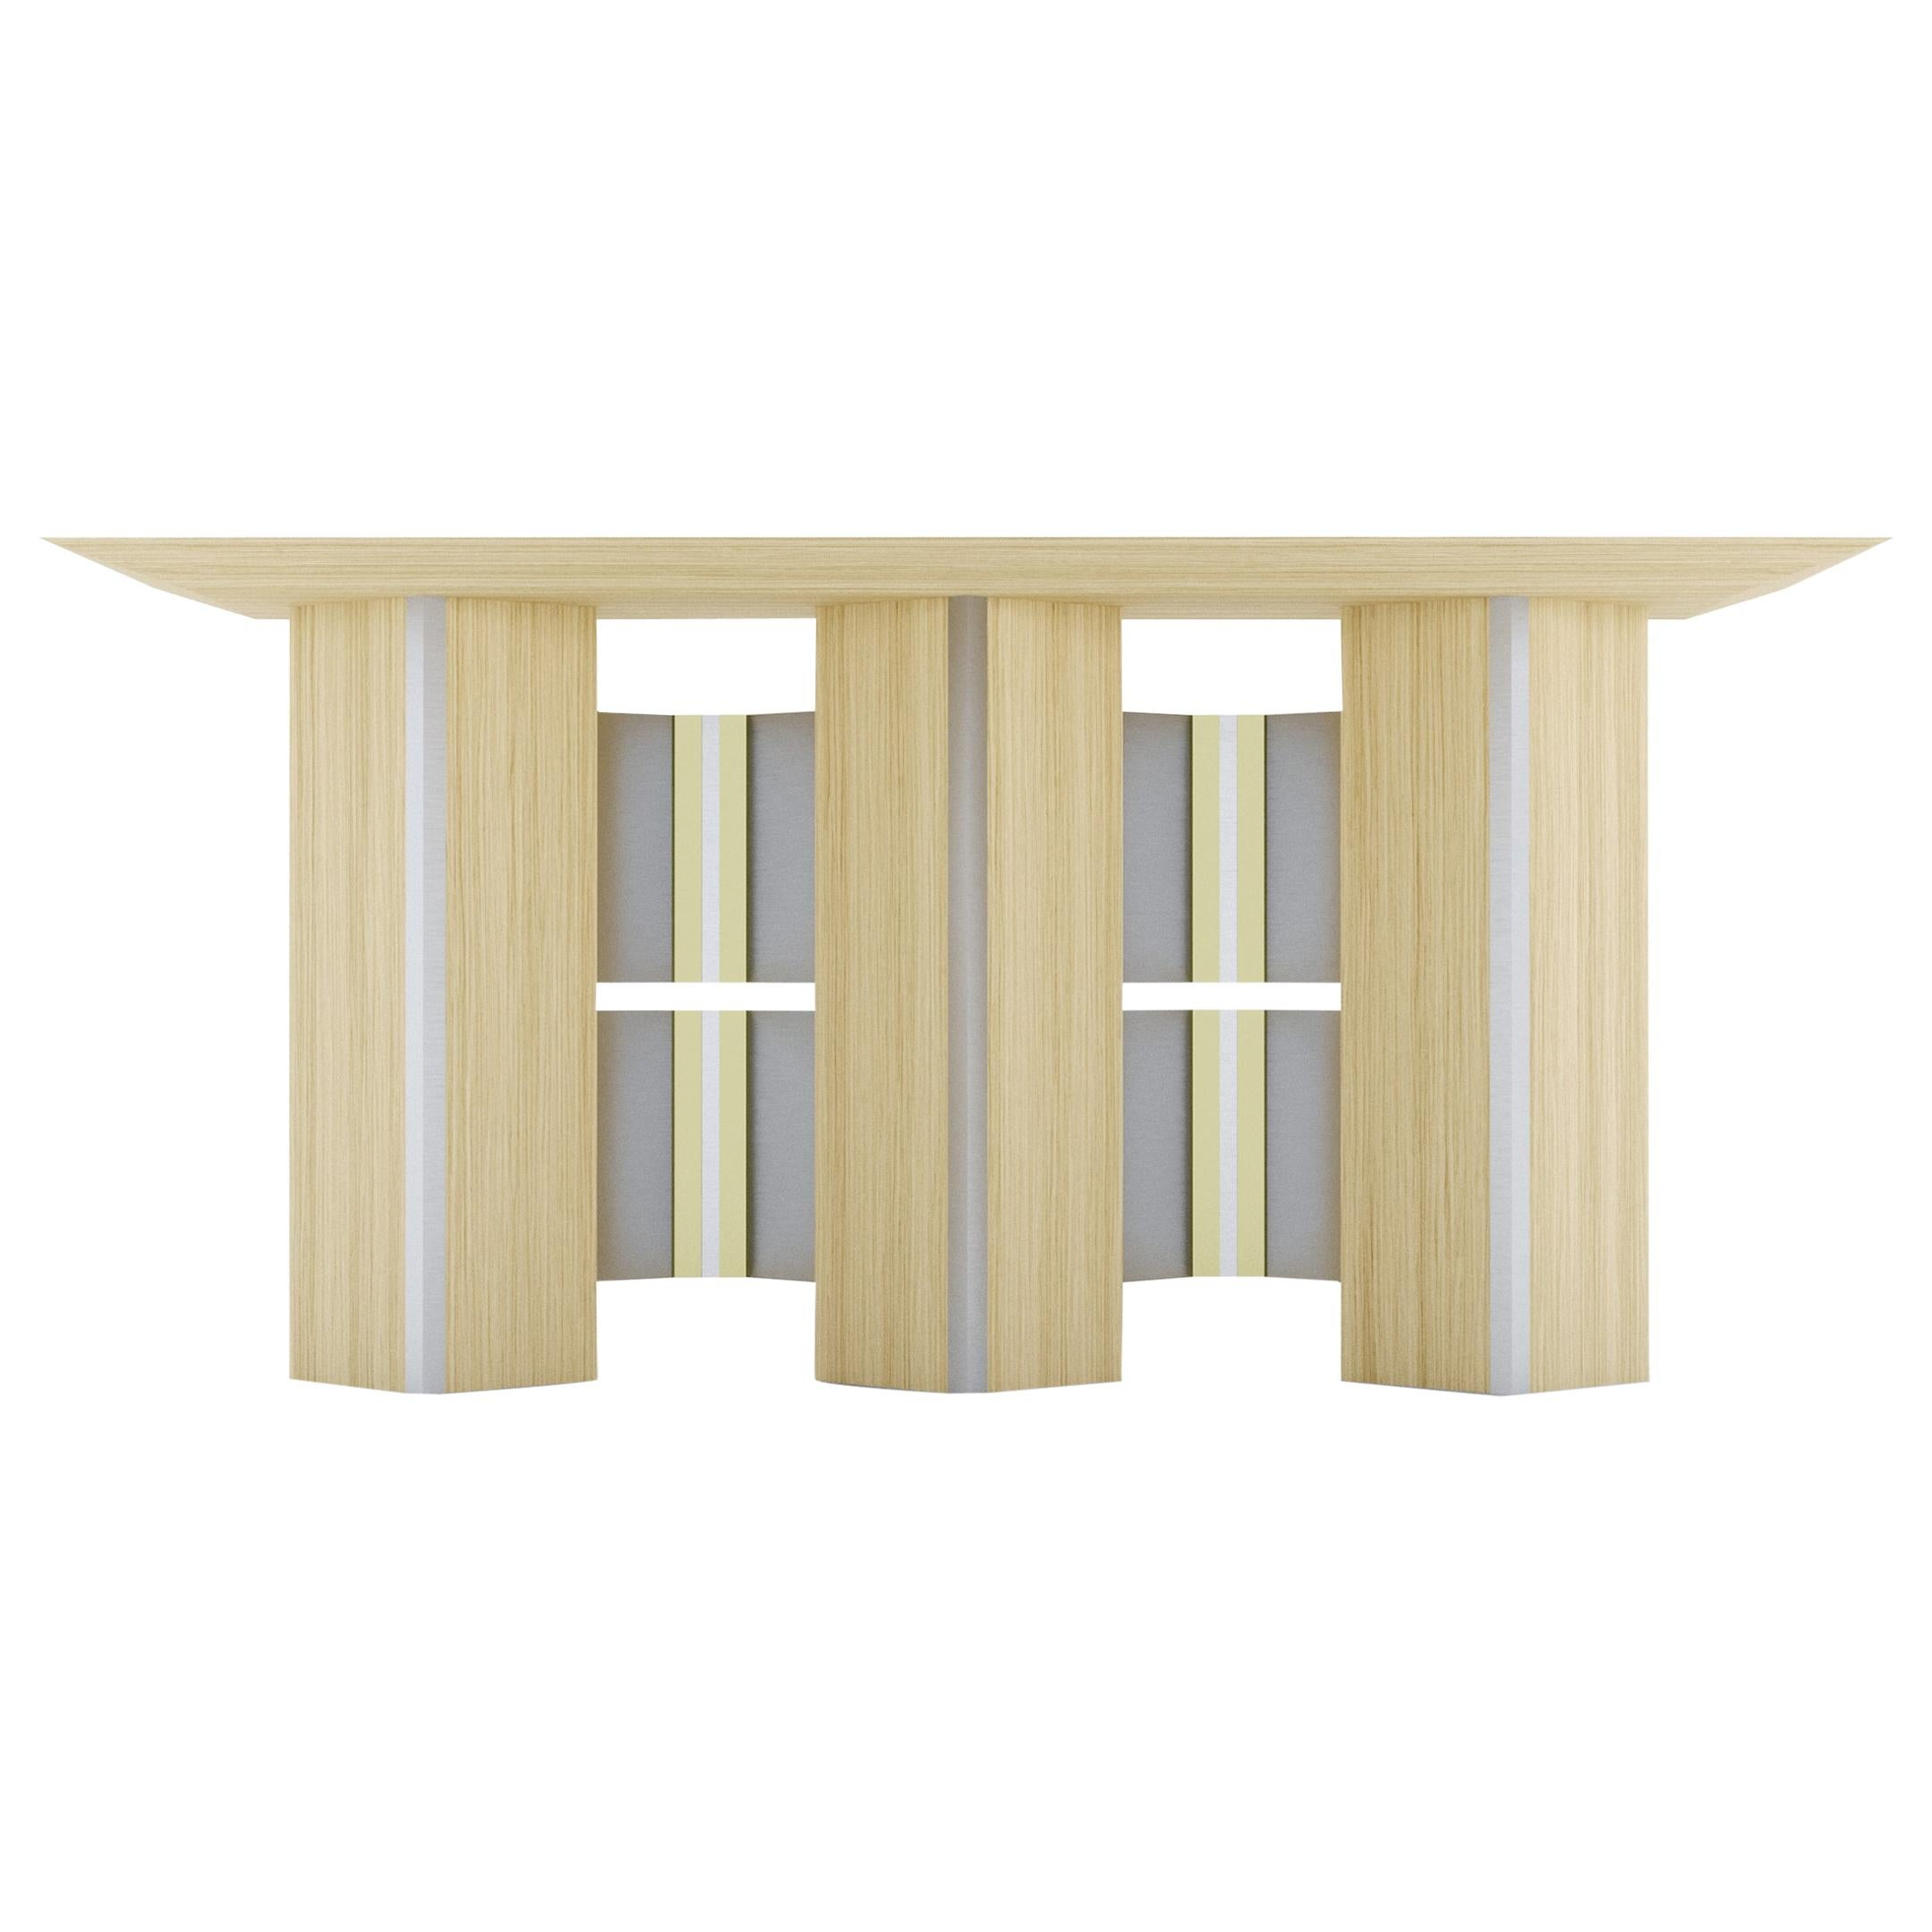 Geometric Console Table White Oak Wood Metal brass StainlessSteel by Ana Volante